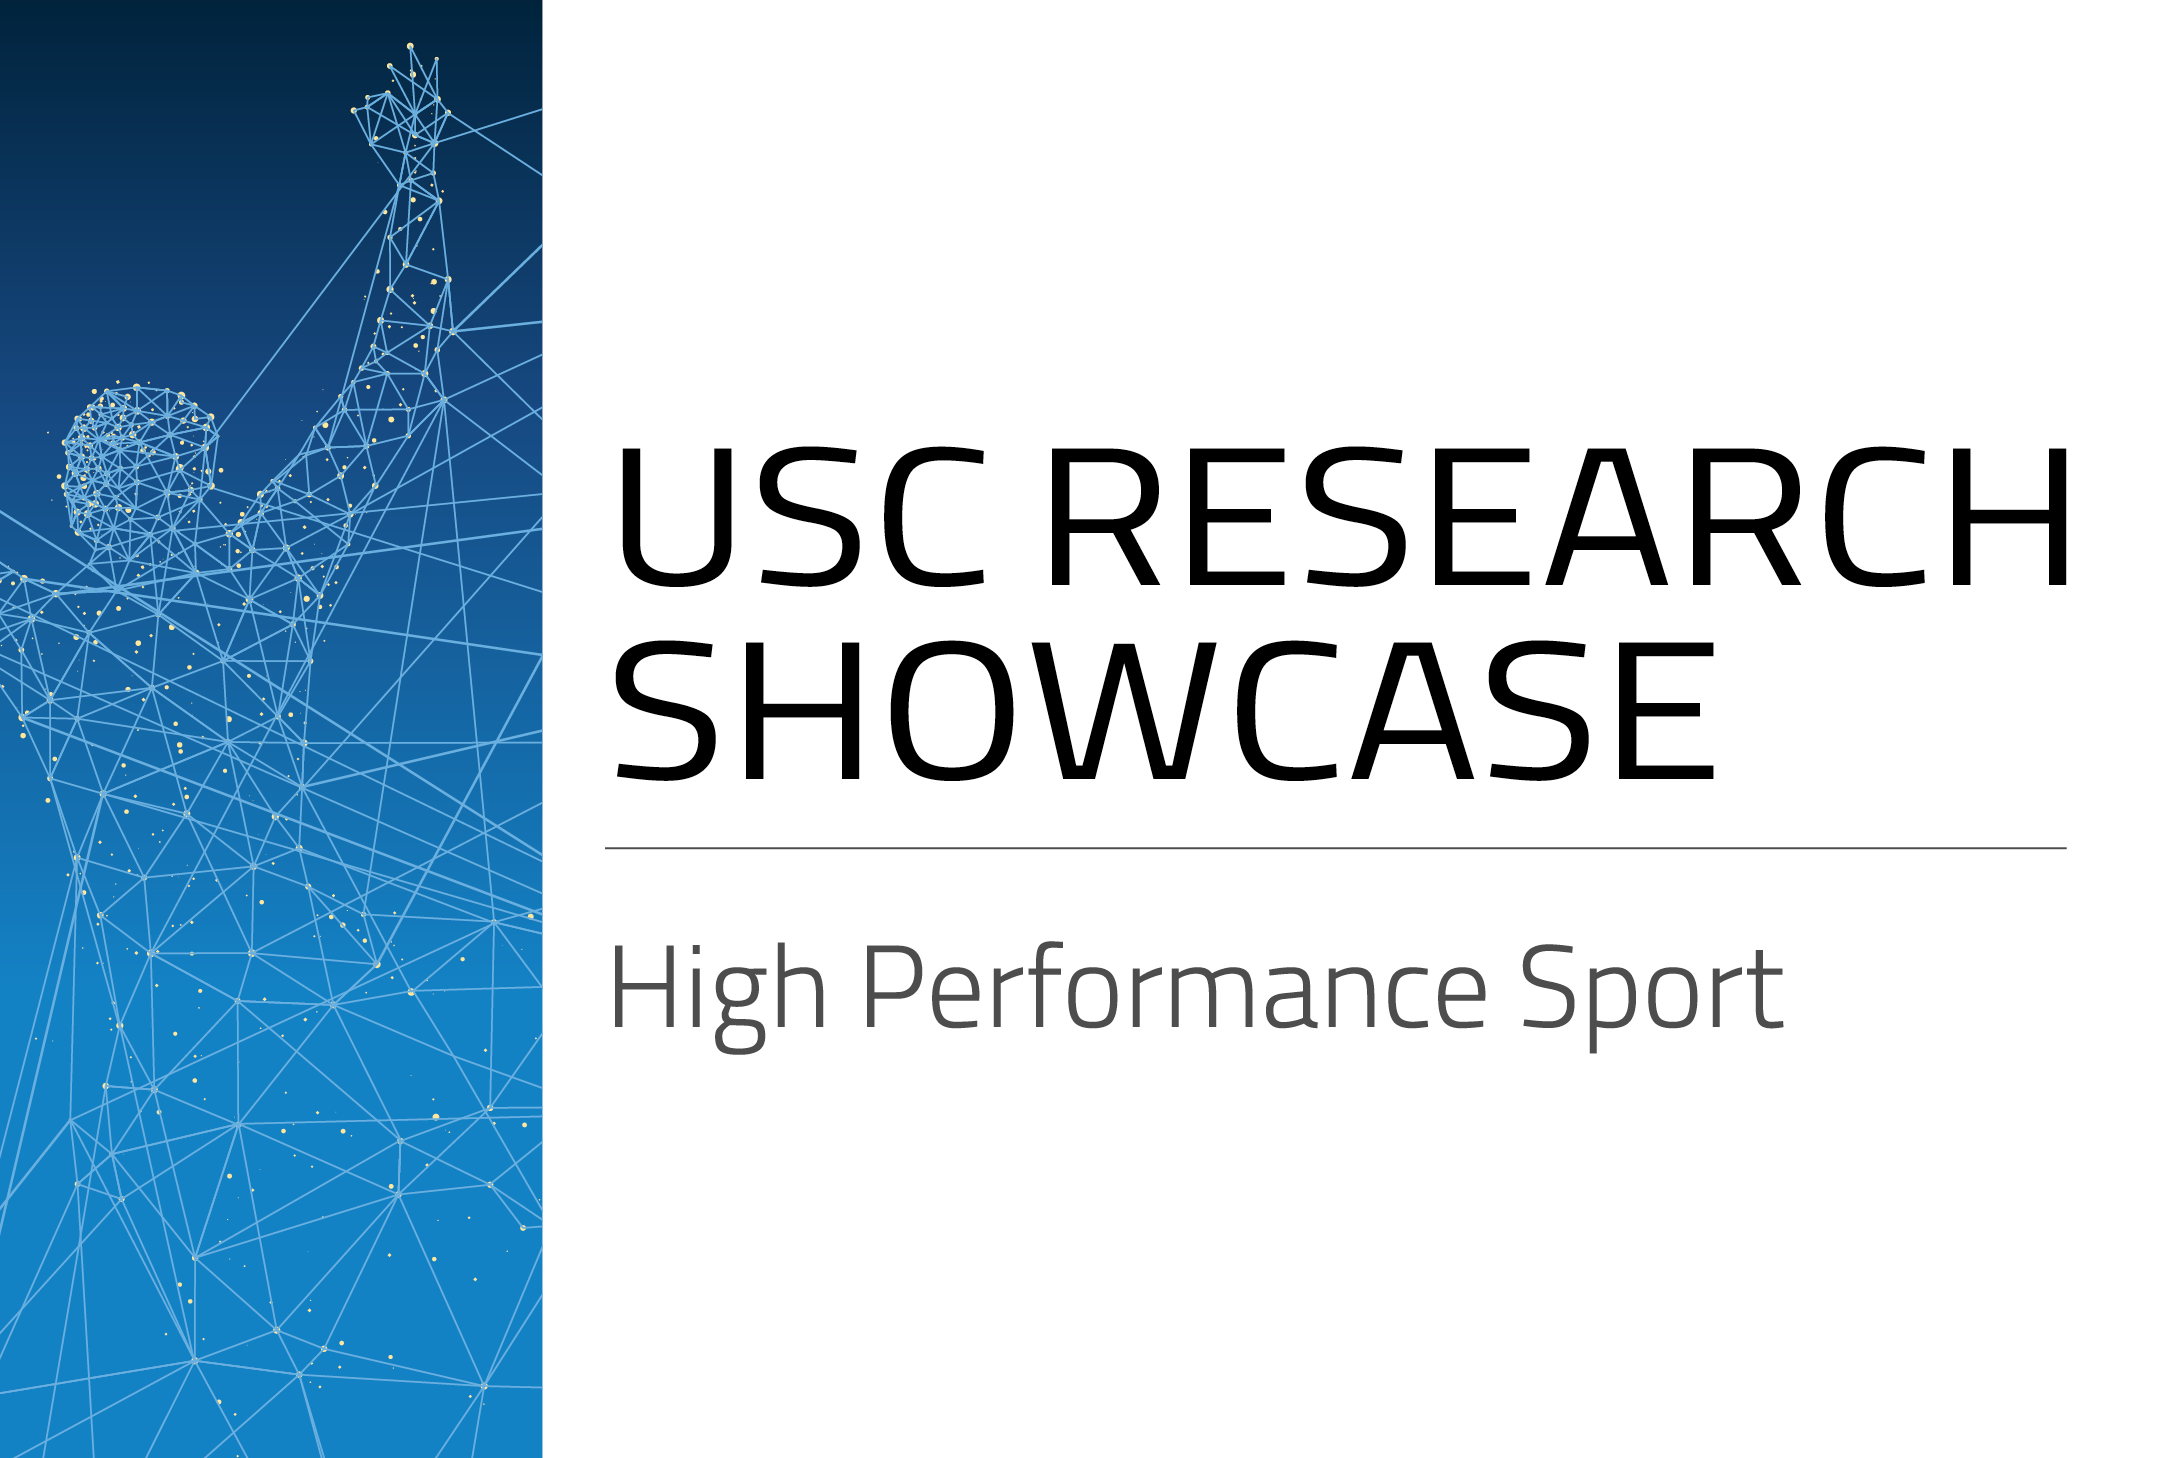 USC Research Showcase - High Performance Sport